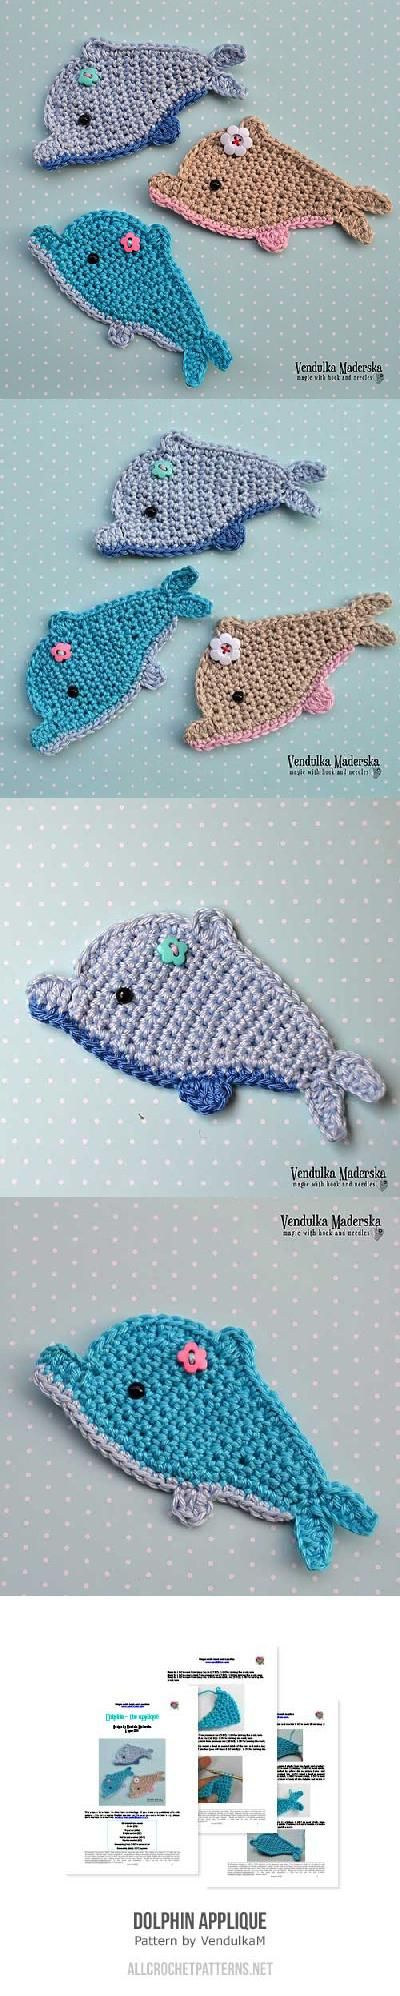 Dolphin Applique Crochet Pattern